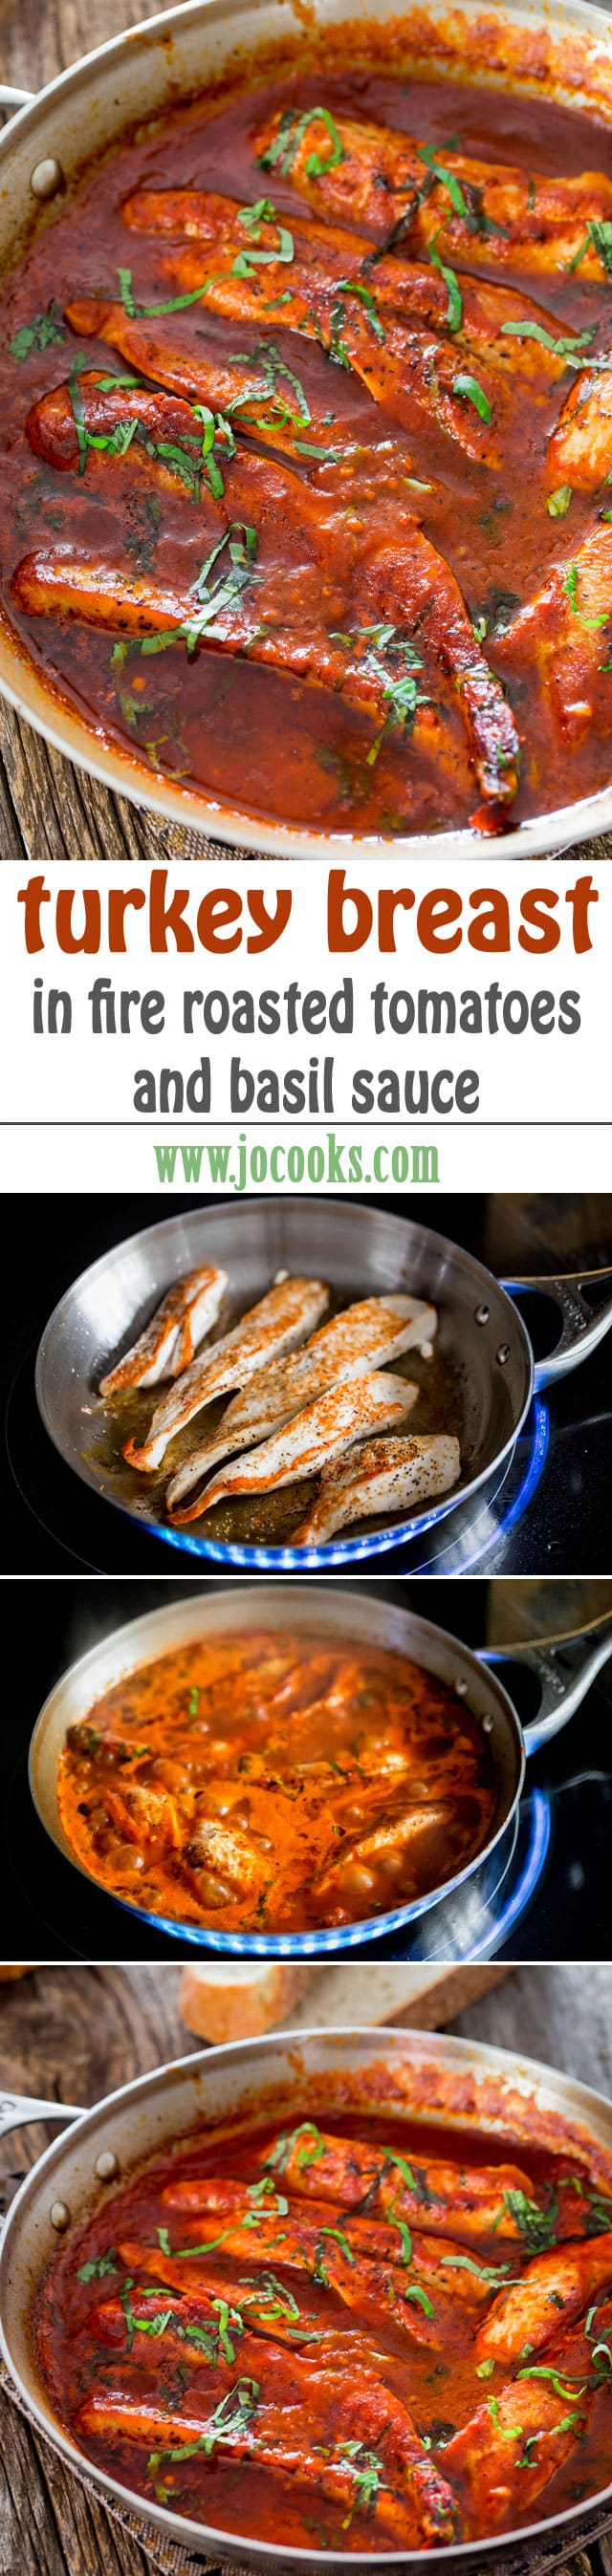 Turkey Breast in Fire Roasted Tomato and Basil Sauce - Jo ...